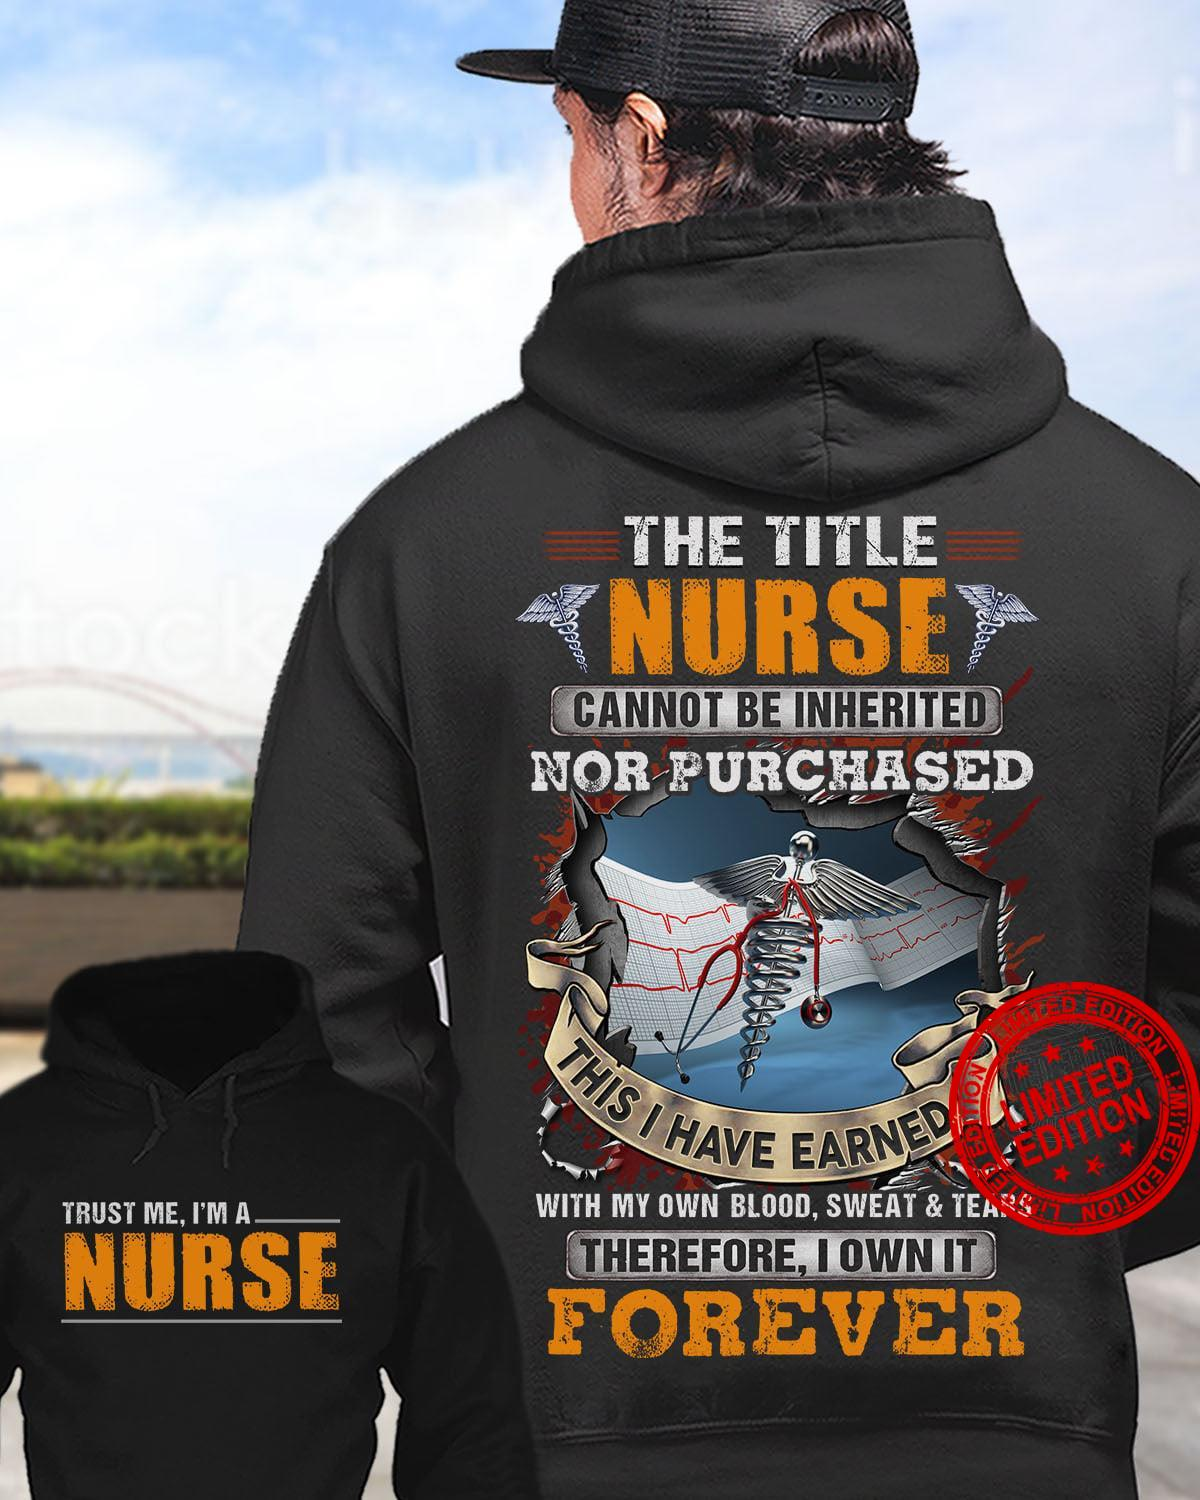 The Title Nurse Cannot Be Inherited Nor Purchased This I Have Earned Therefore I Own It Forever Shirt